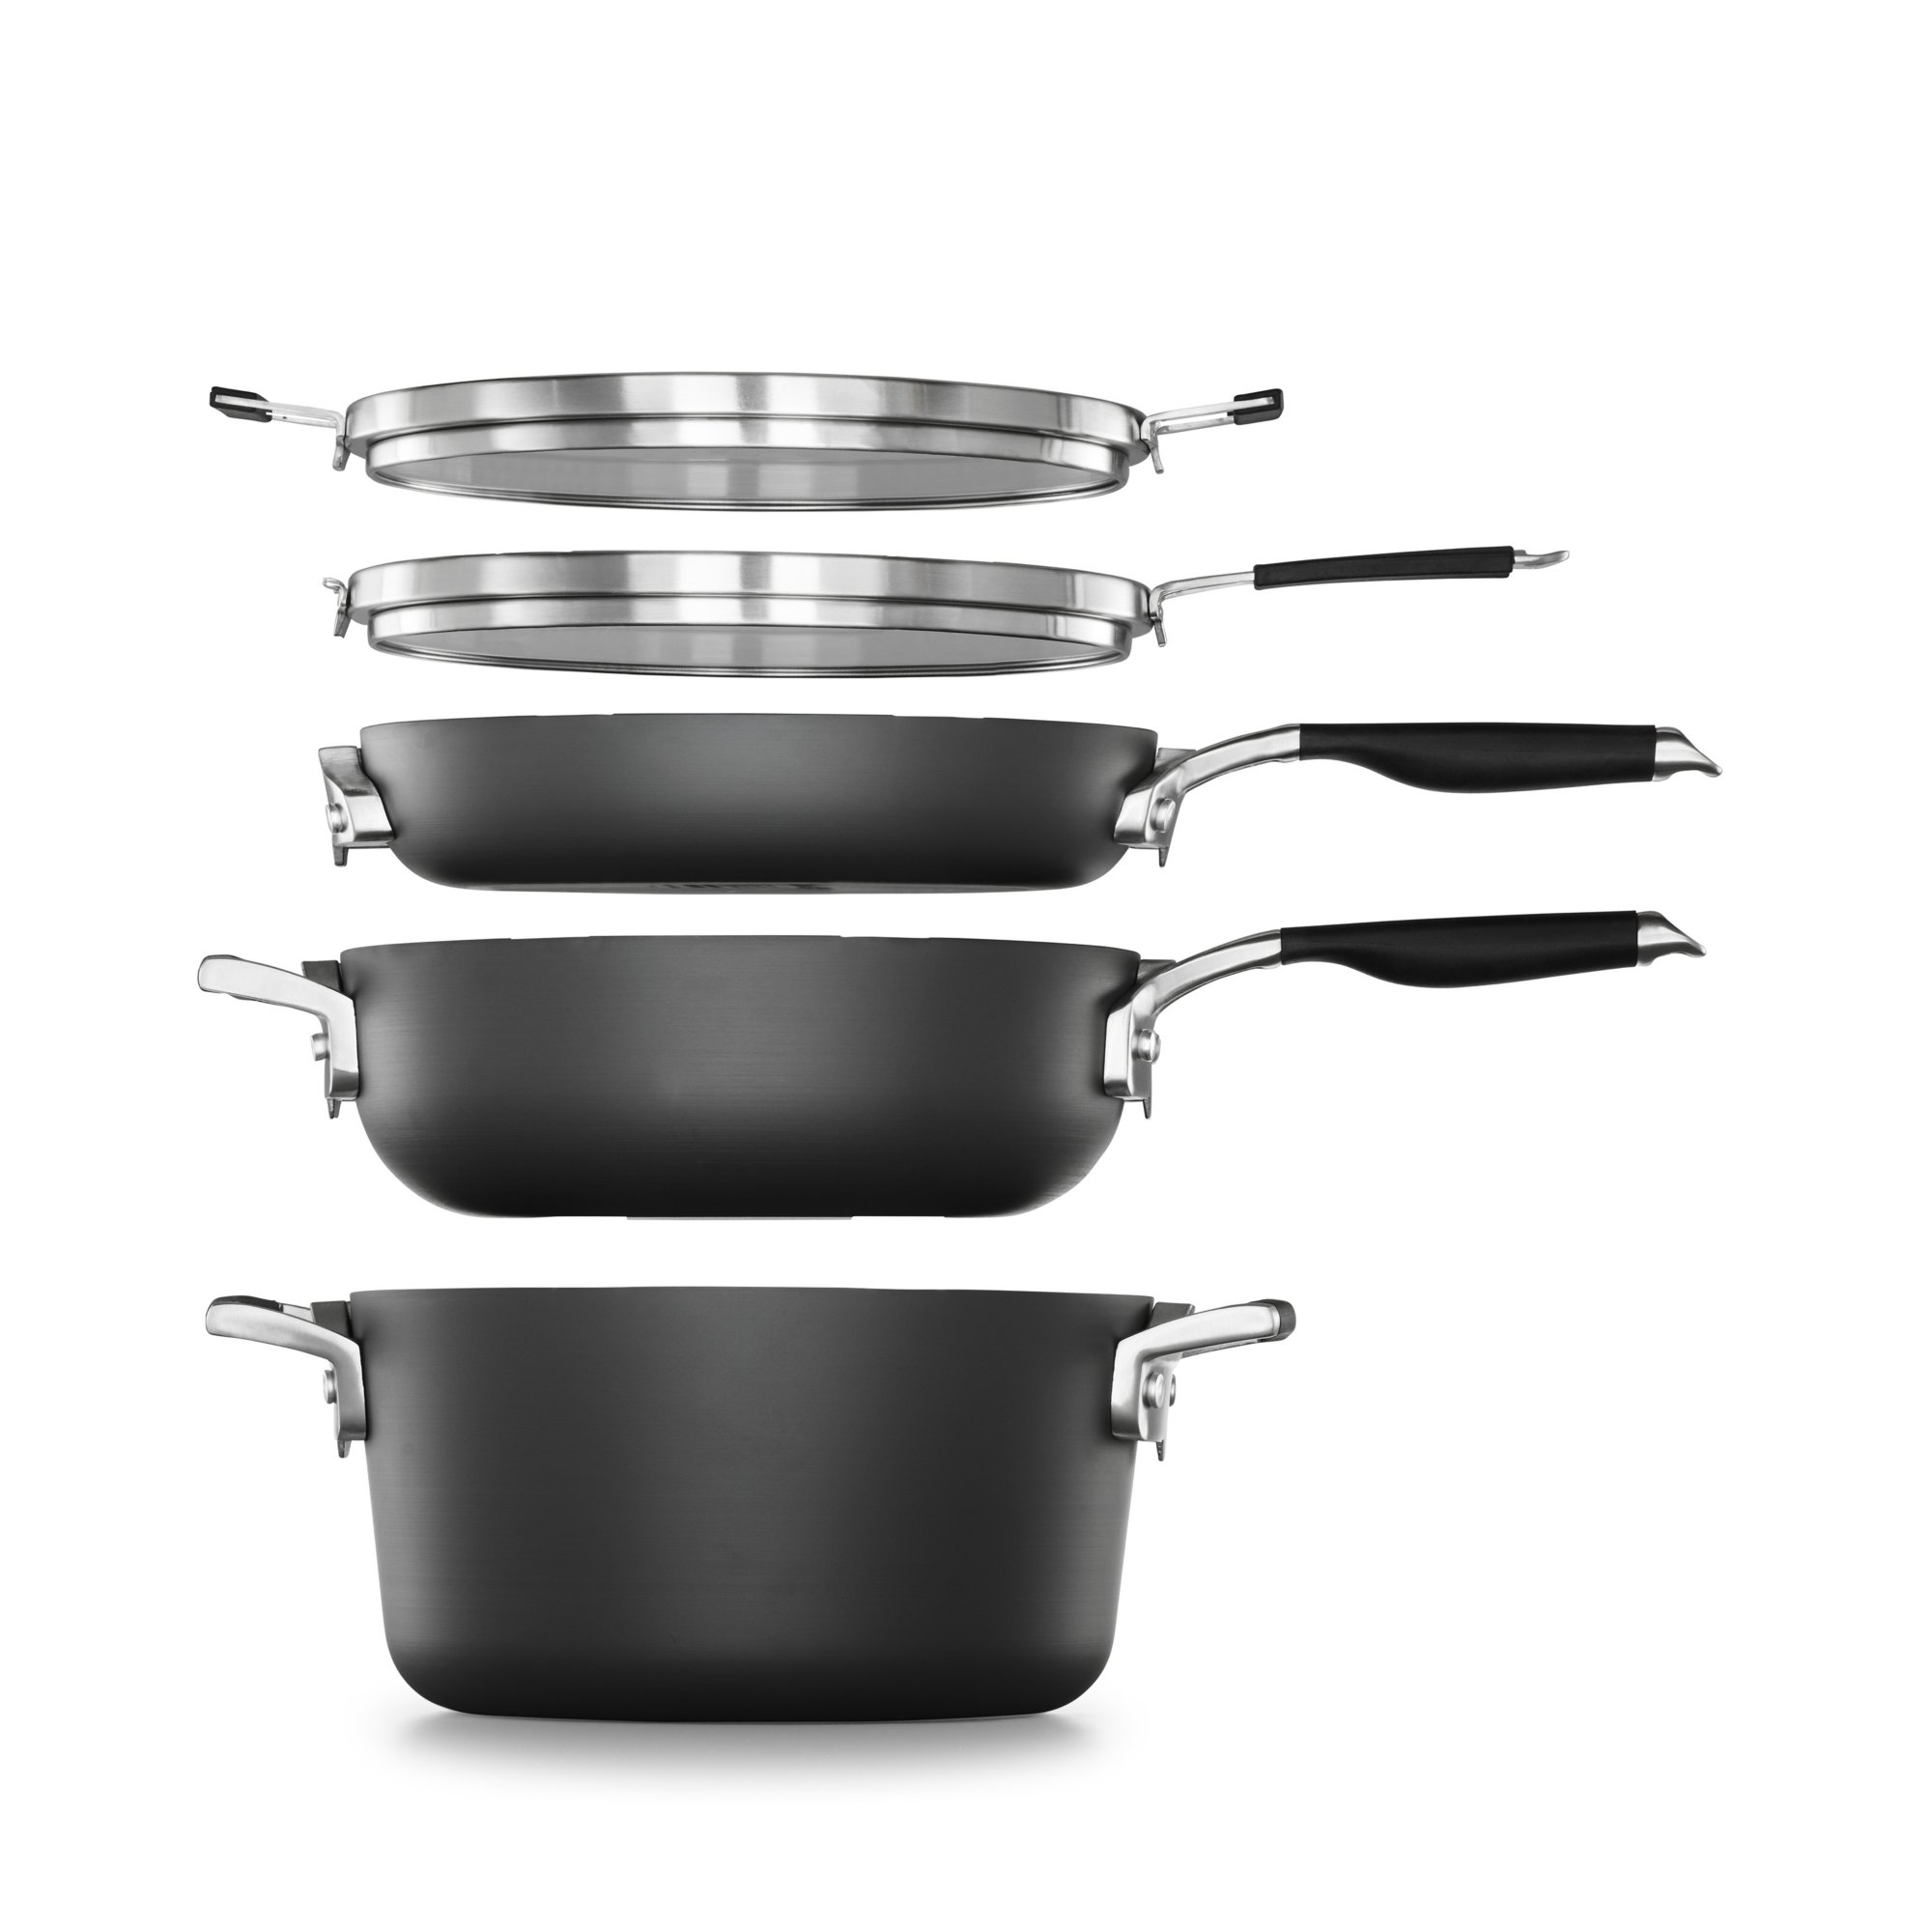 Select by Calphalon SpaceSaving Hard-Anodized Nonstick 7-Piece Starter Cookware Set